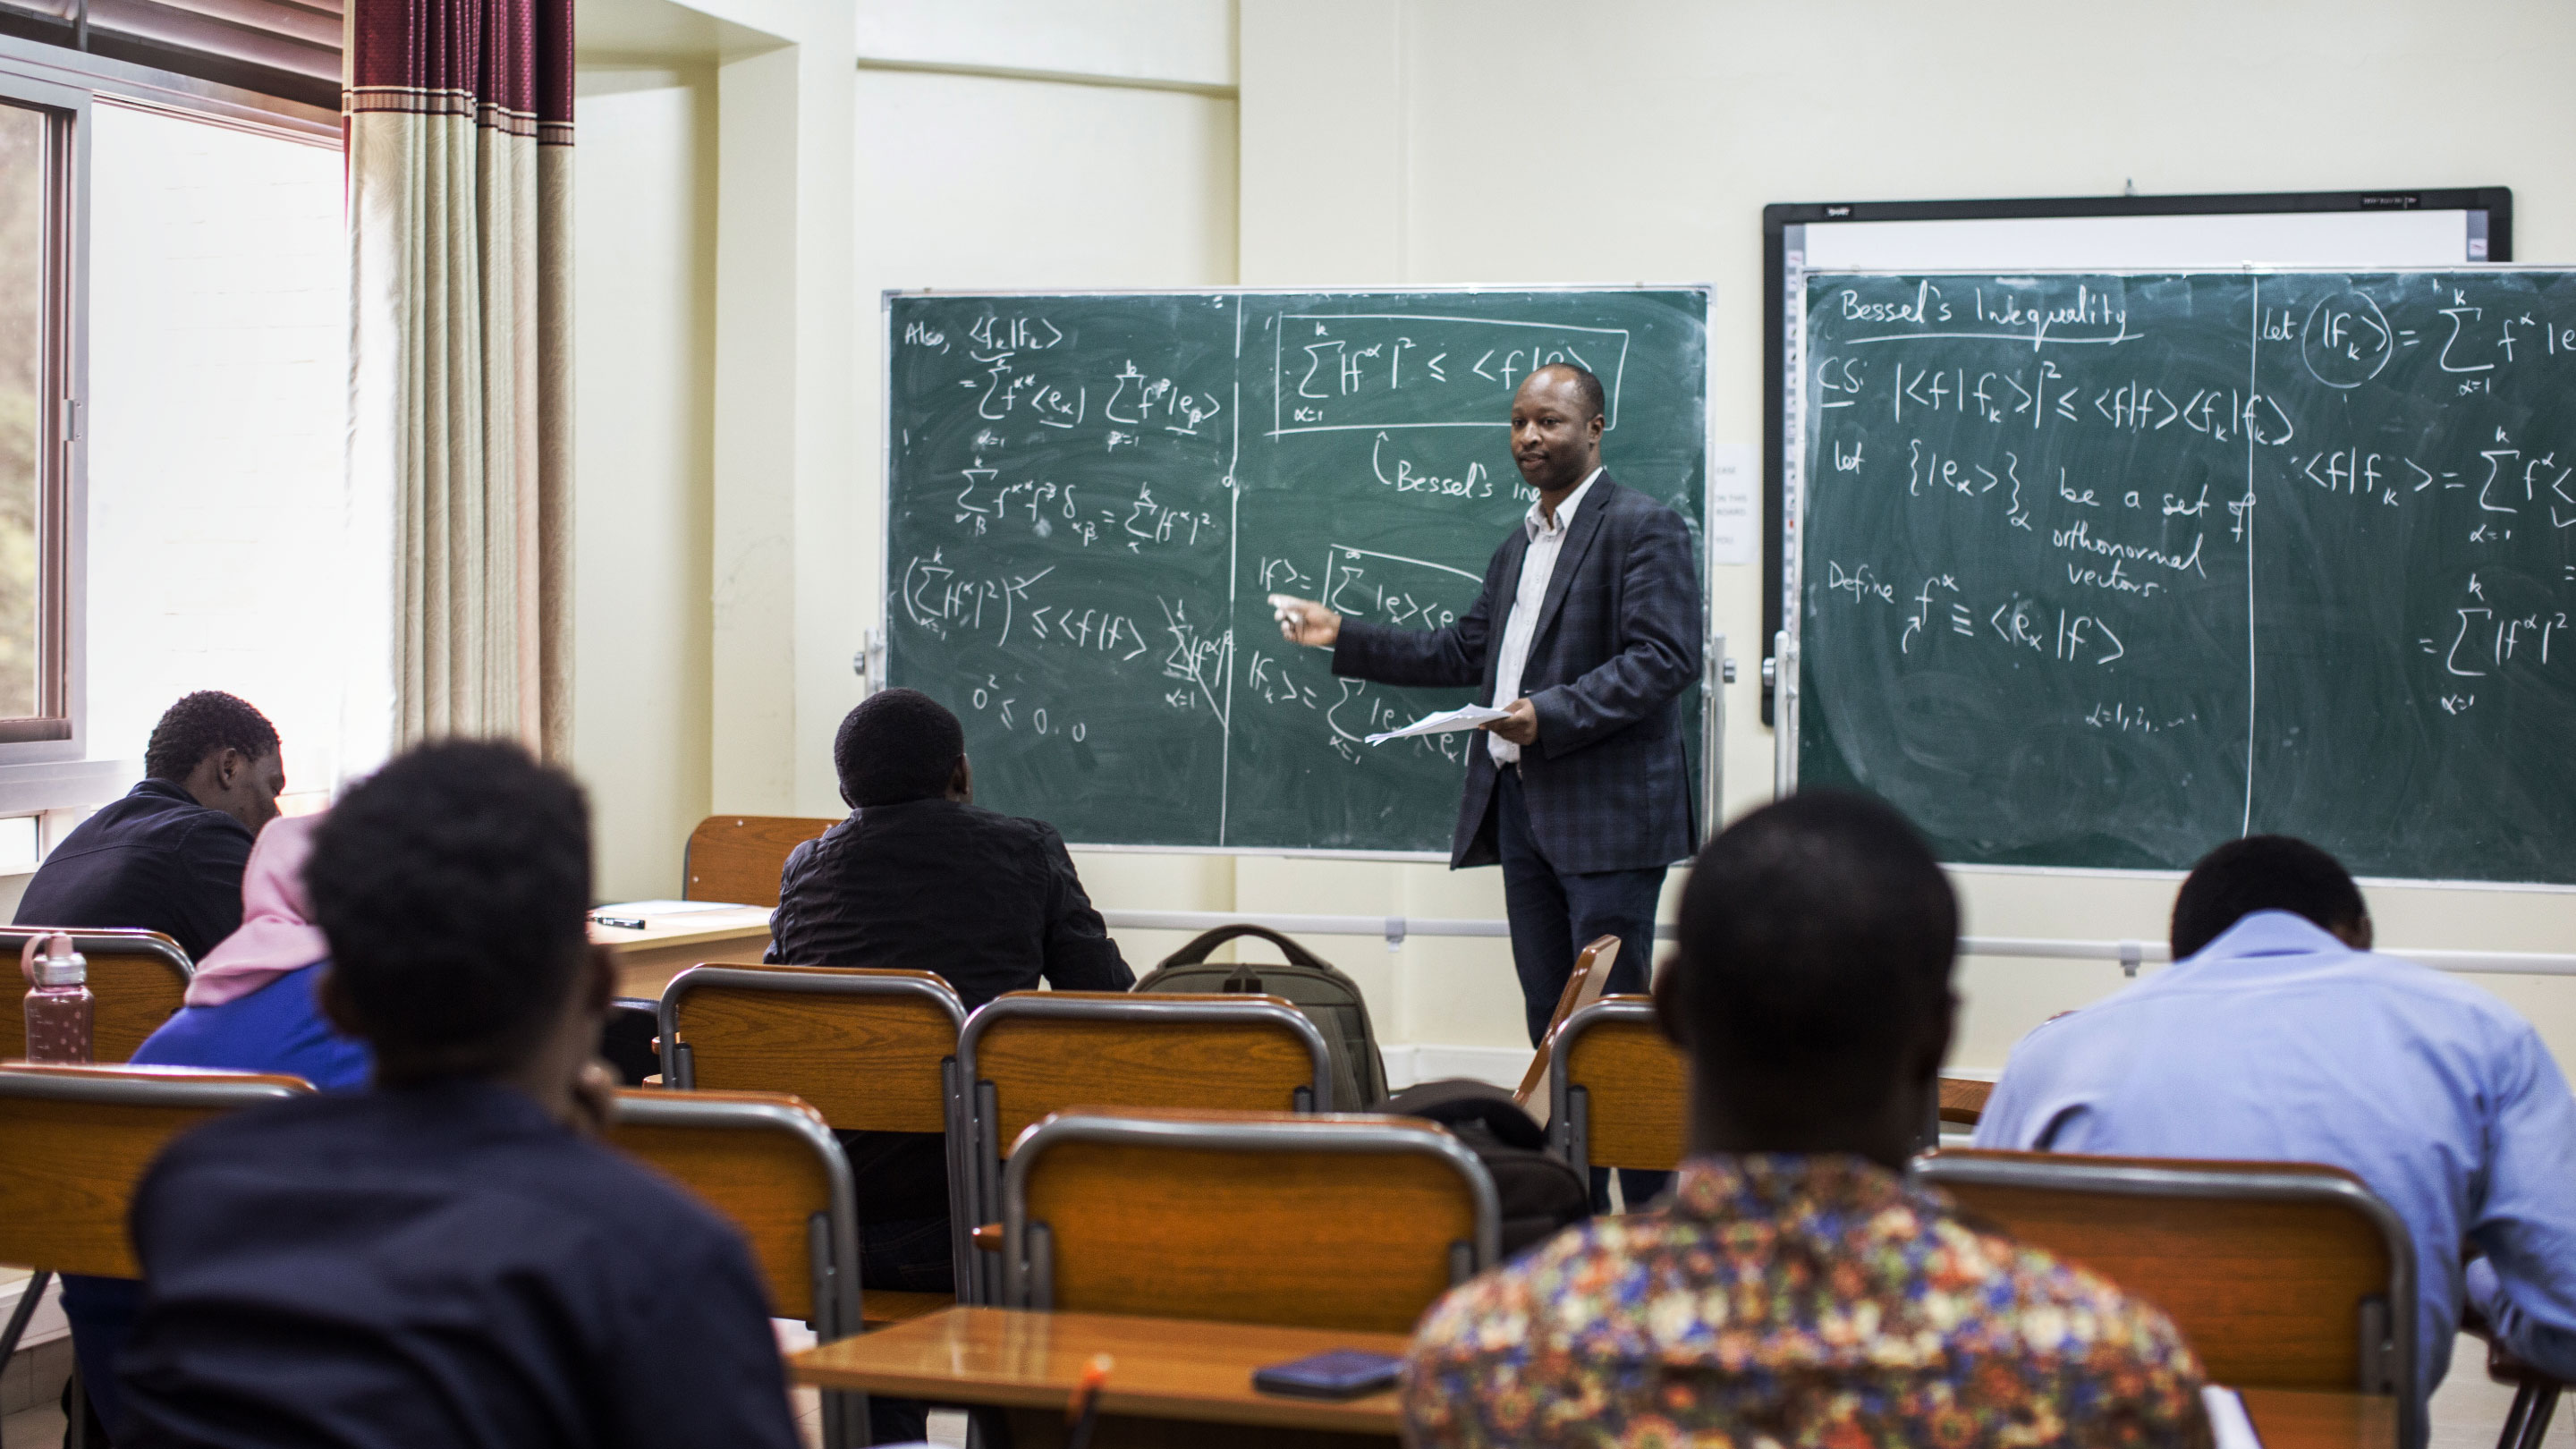 Omololu Akin-Ojo in a blue checked suit standing at the front of a class, gesturing toward equations on a green chalkboard.